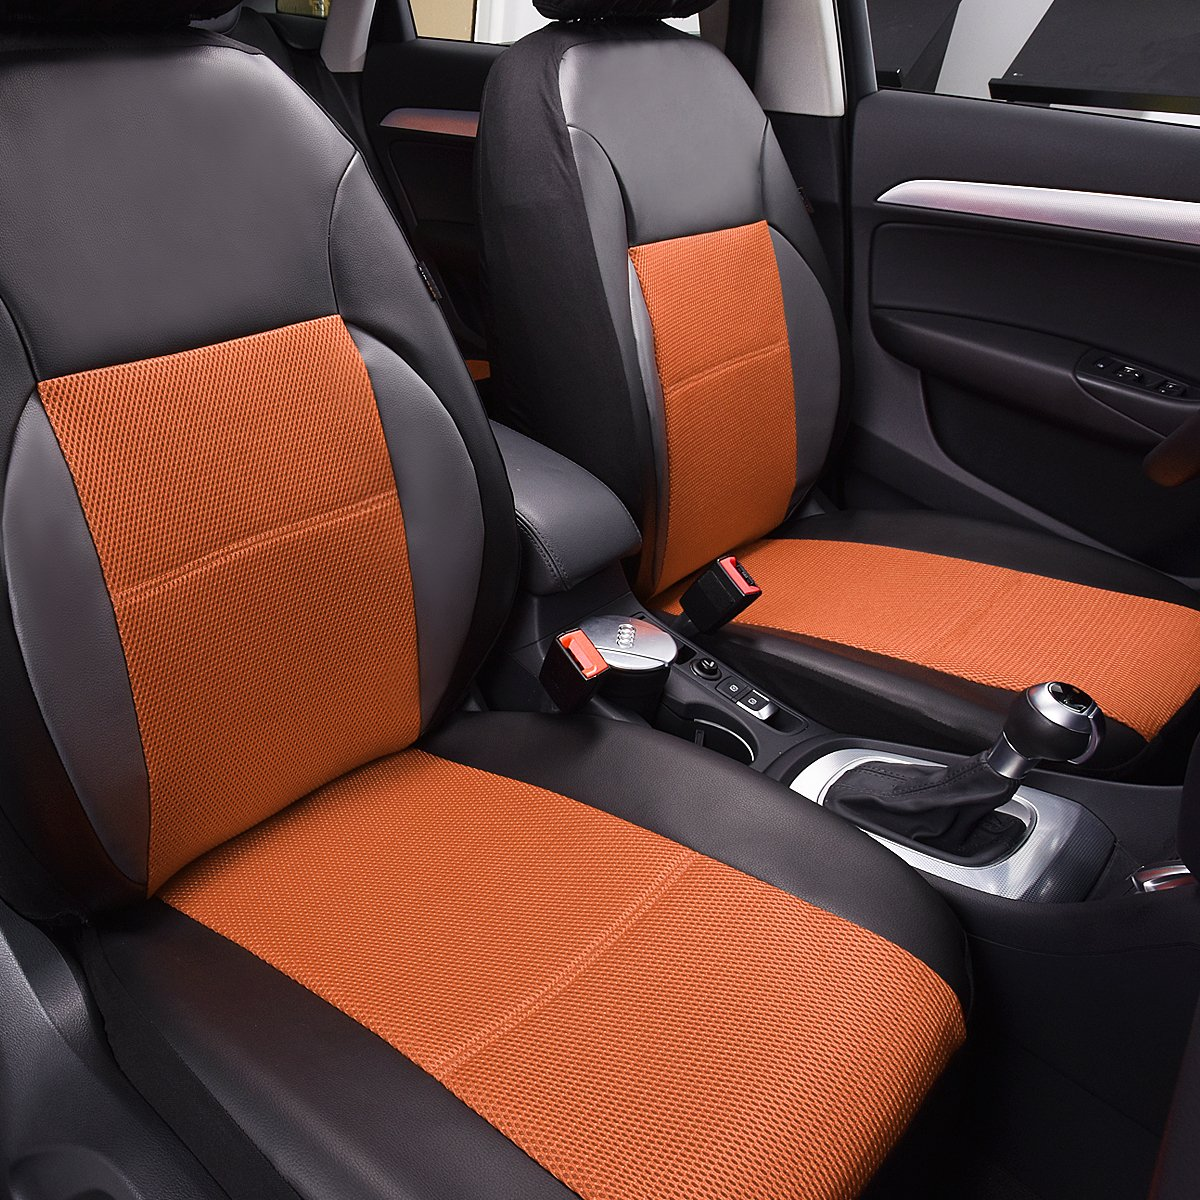 CAR PASS 6 Pieces Universal Two Front Leather Car Seat Covers Set Balck and Khaki LJ